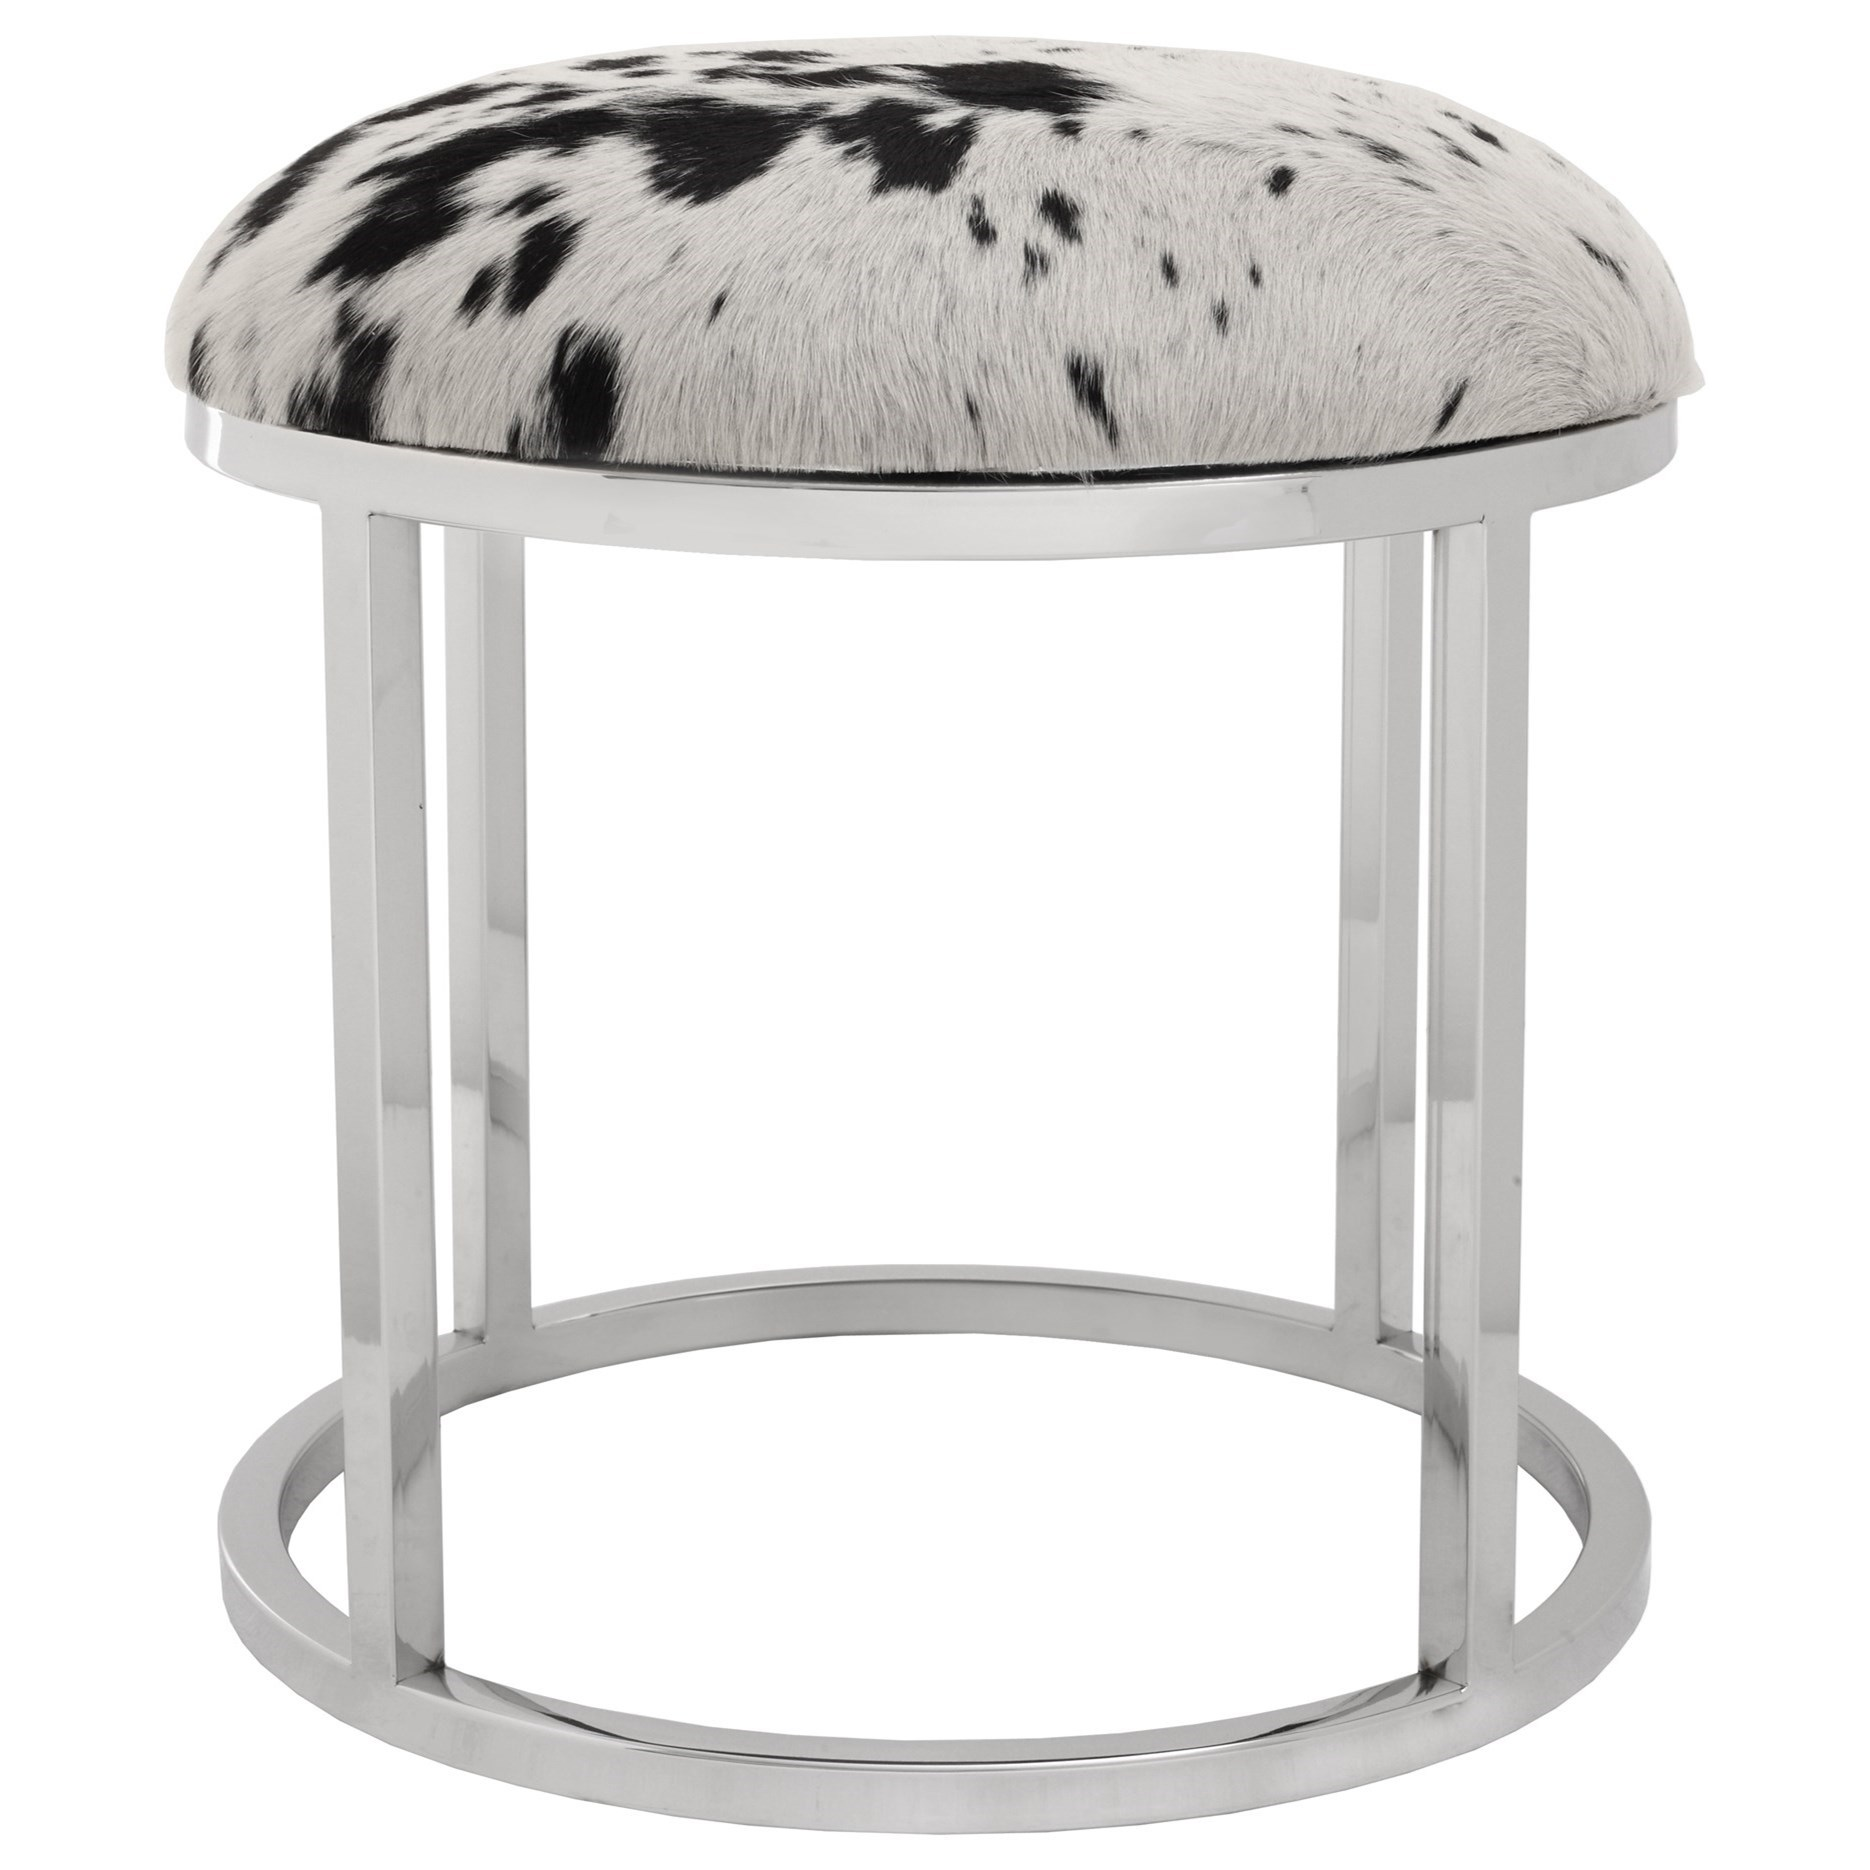 Appa Cowhide Round Stool by Moe's Home Collection at Stoney Creek Furniture